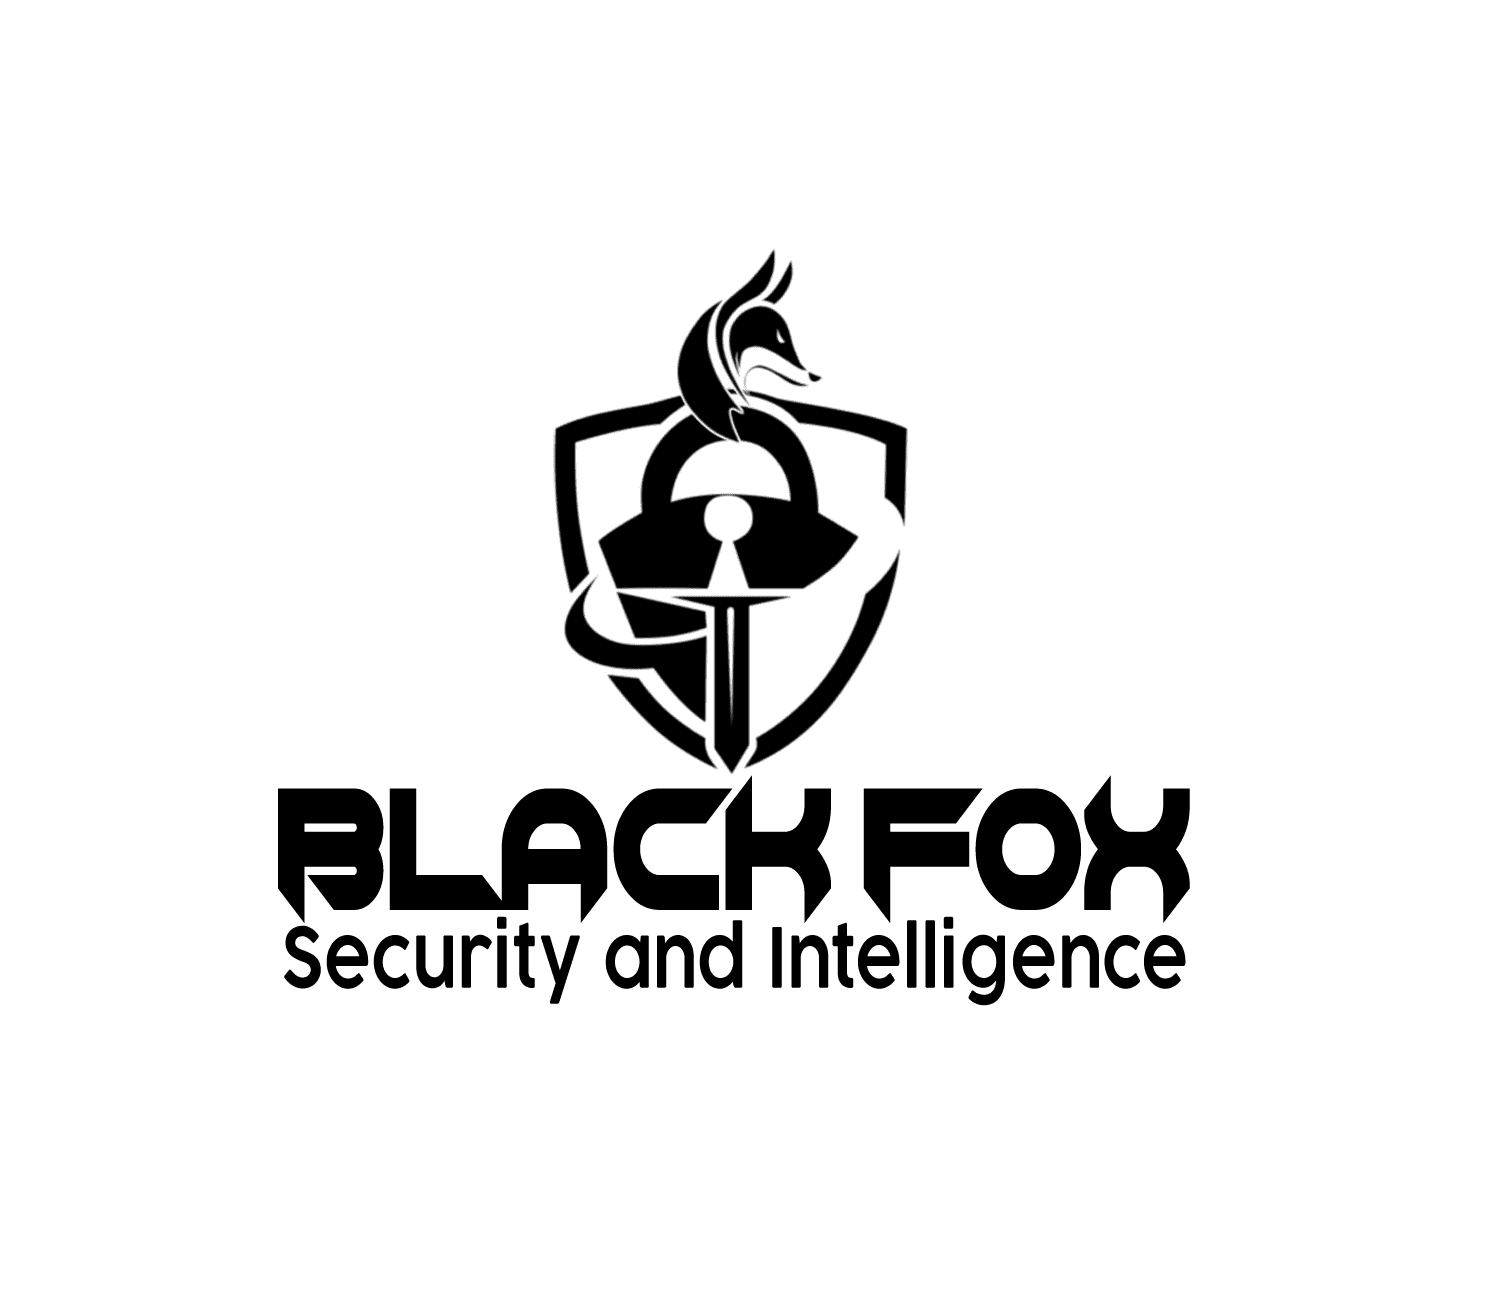 Blackfox Security & Intelligence